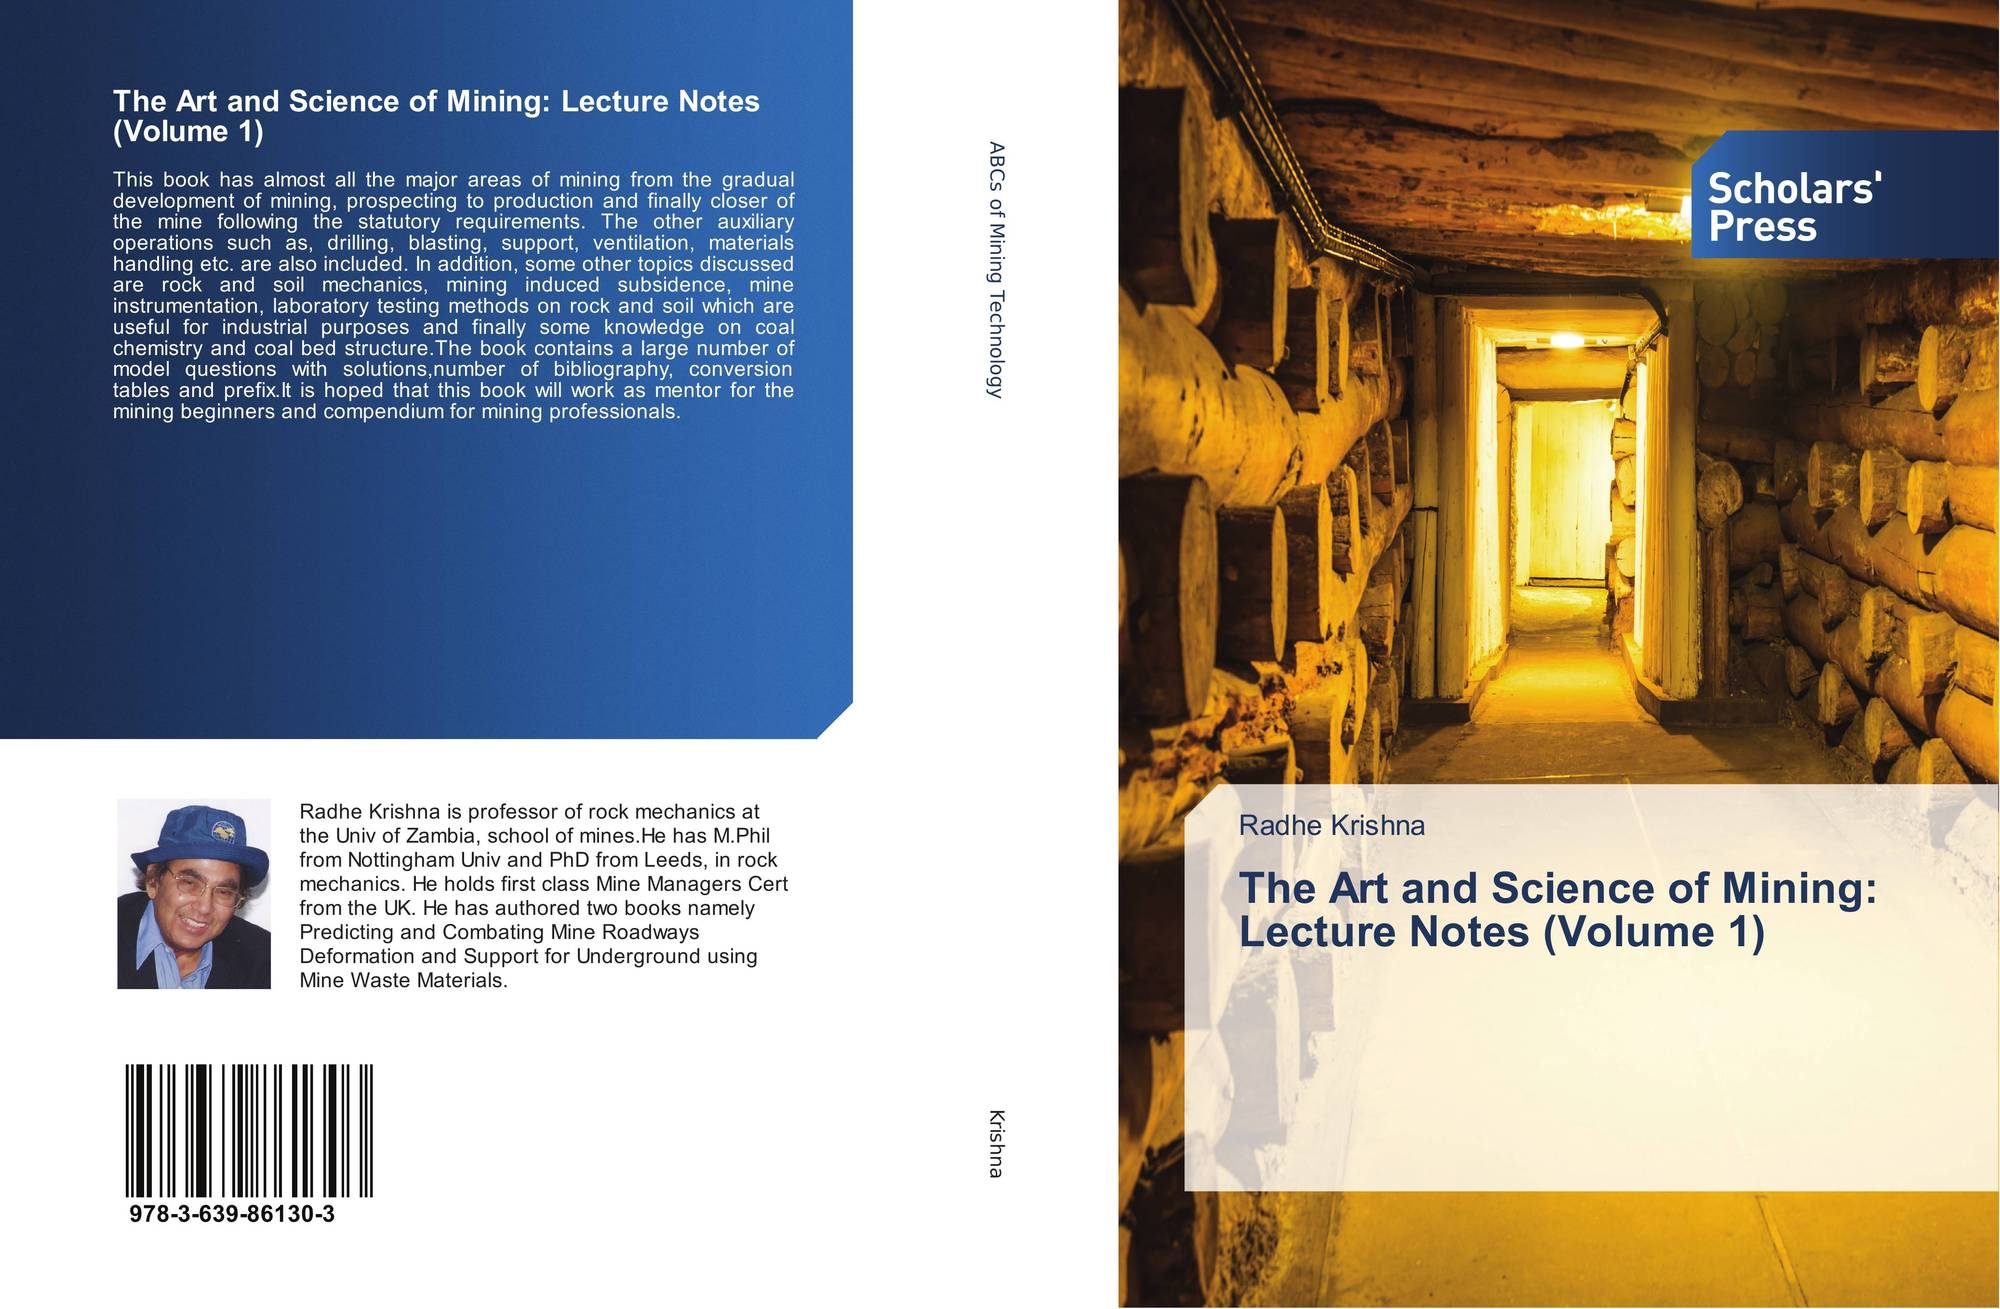 science mining i Process mining: data science in action [wil m p van der aalst] on amazoncom free shipping on qualifying offers this is the second edition of wil van der aalst's seminal book on process mining, which now discusses the field also in the broader context of data science and big data approaches.